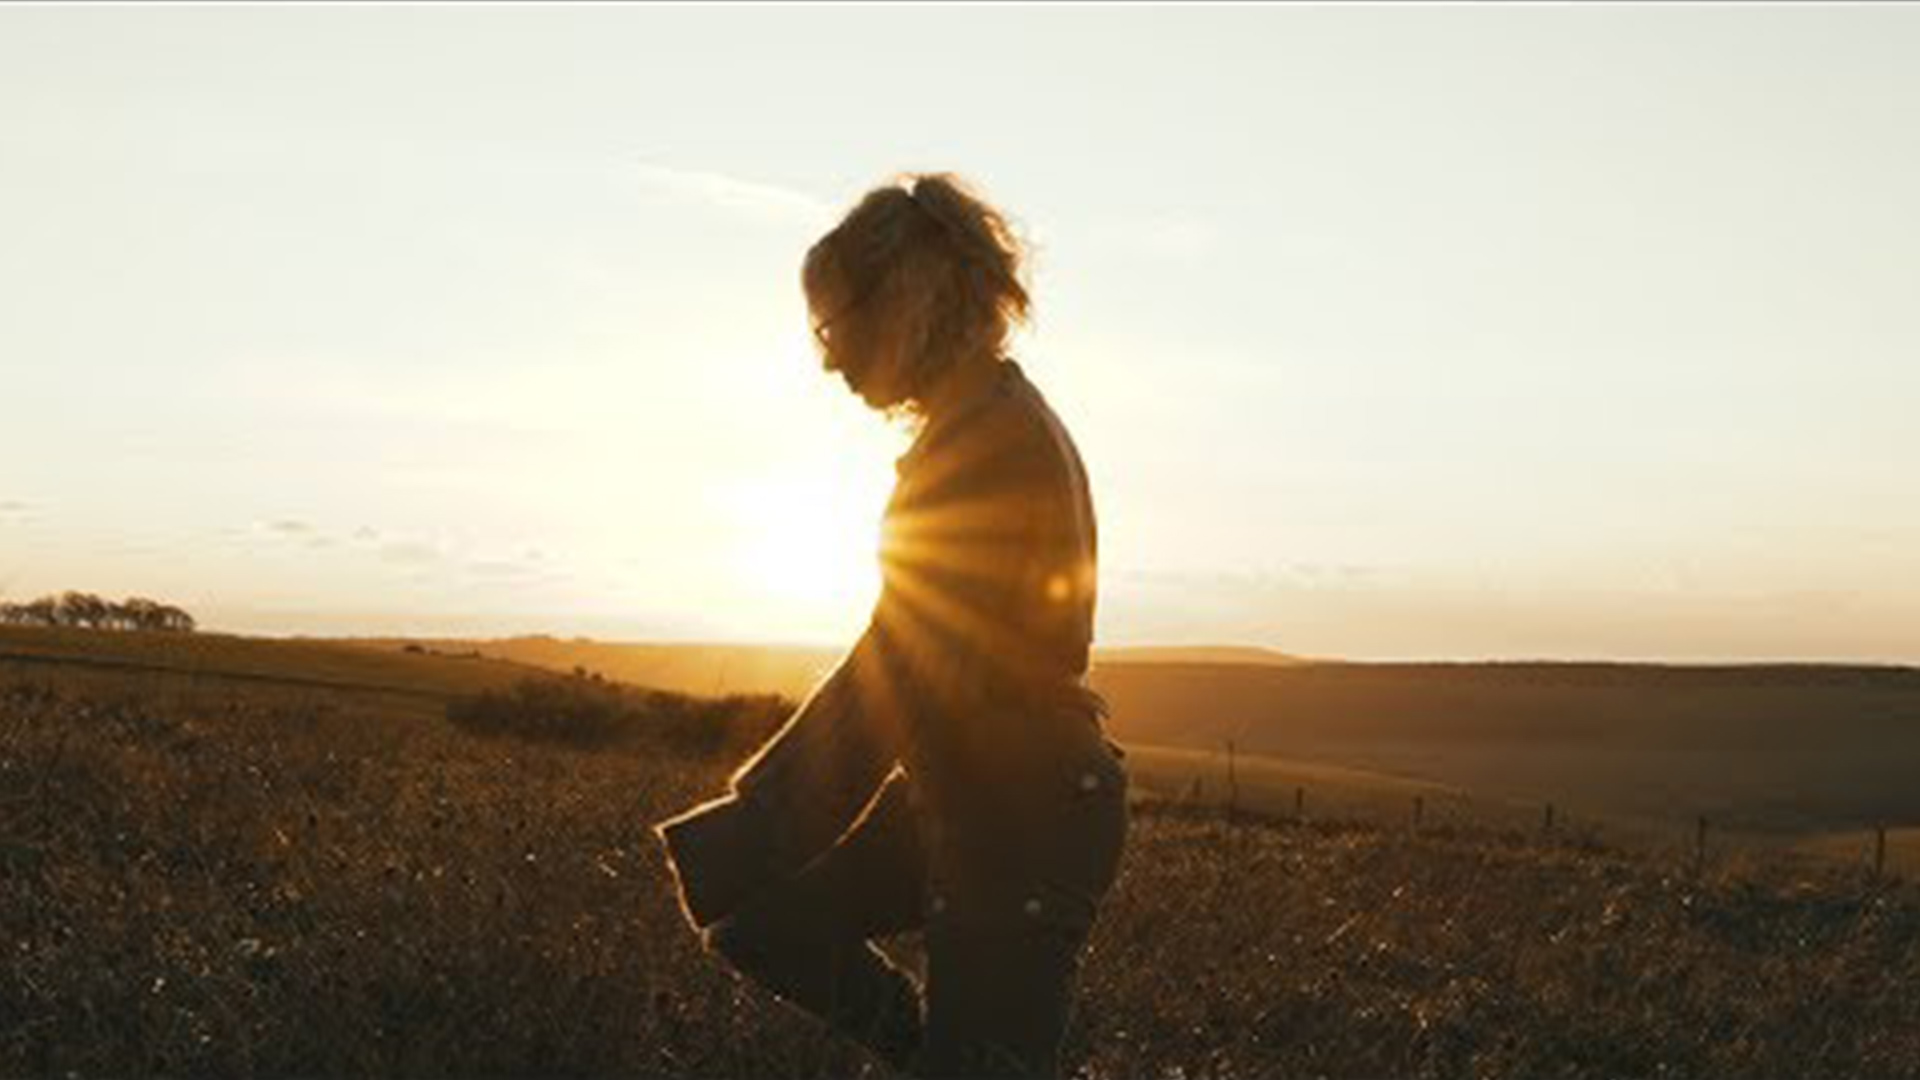 Girl Walking in a Field During Sunset